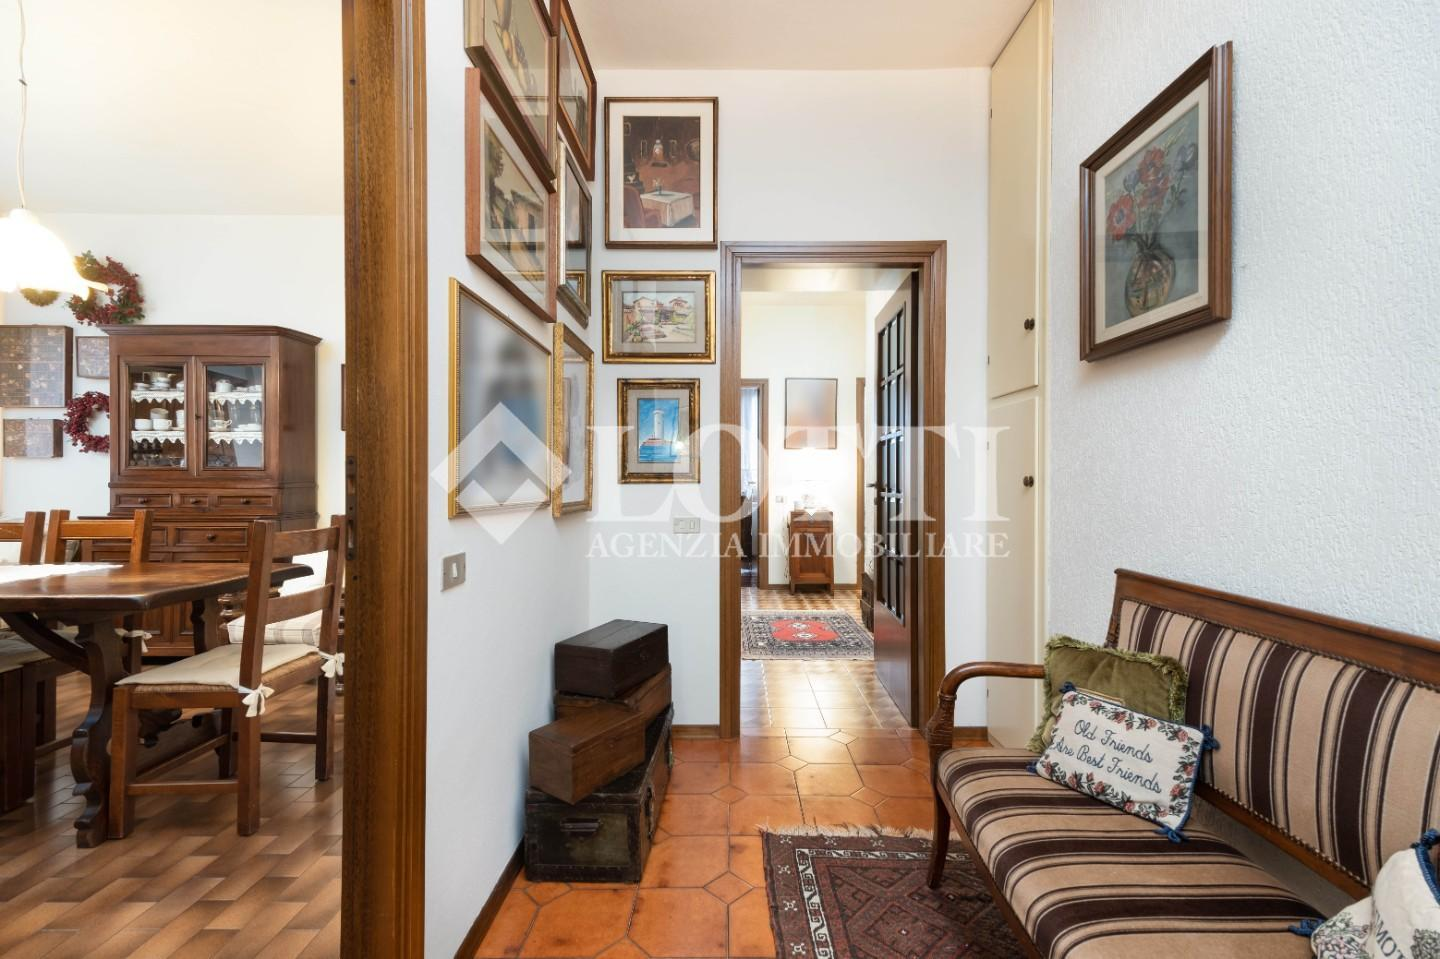 Apartment for sale, ref. 656